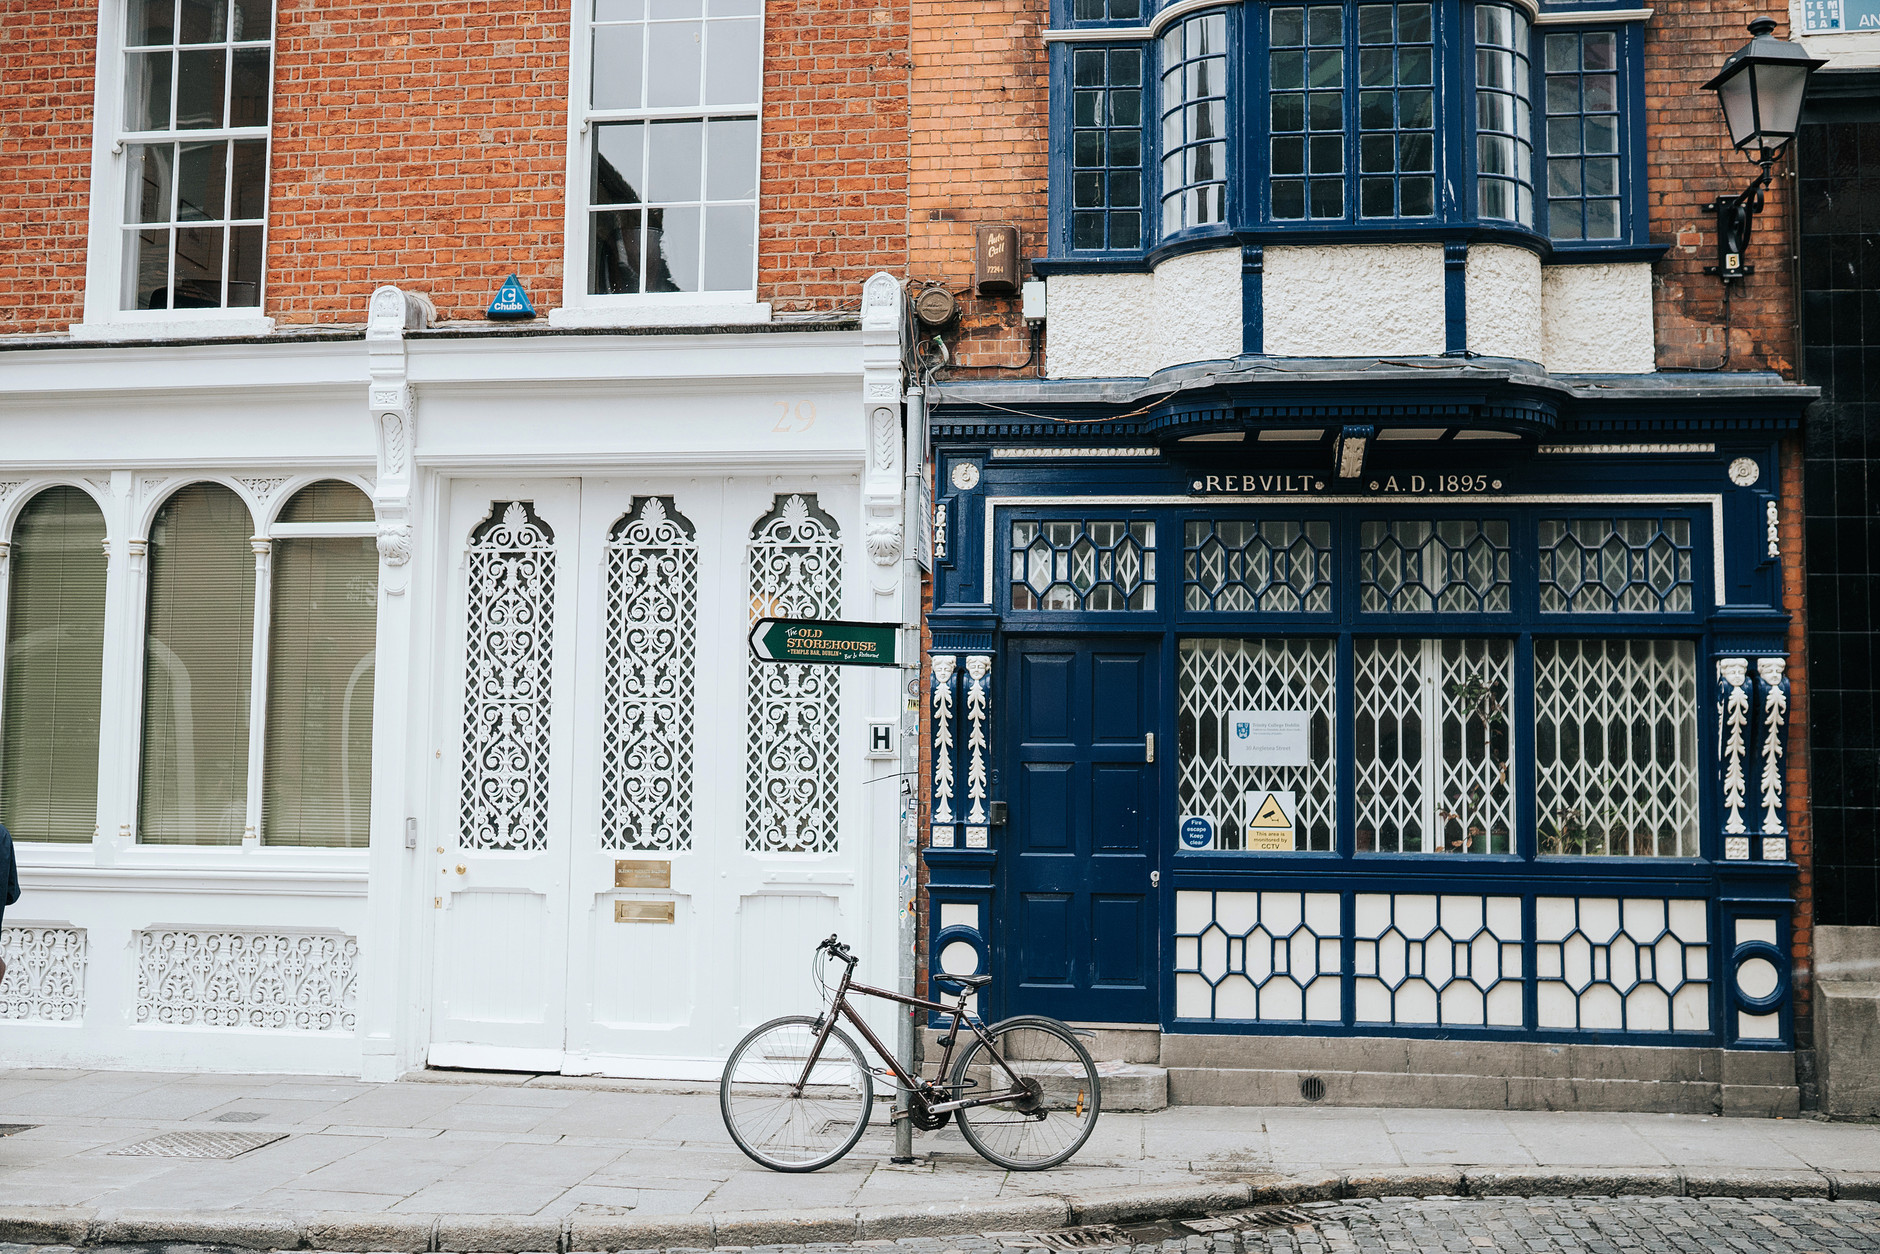 Street photo of Dublin with pretty blue building